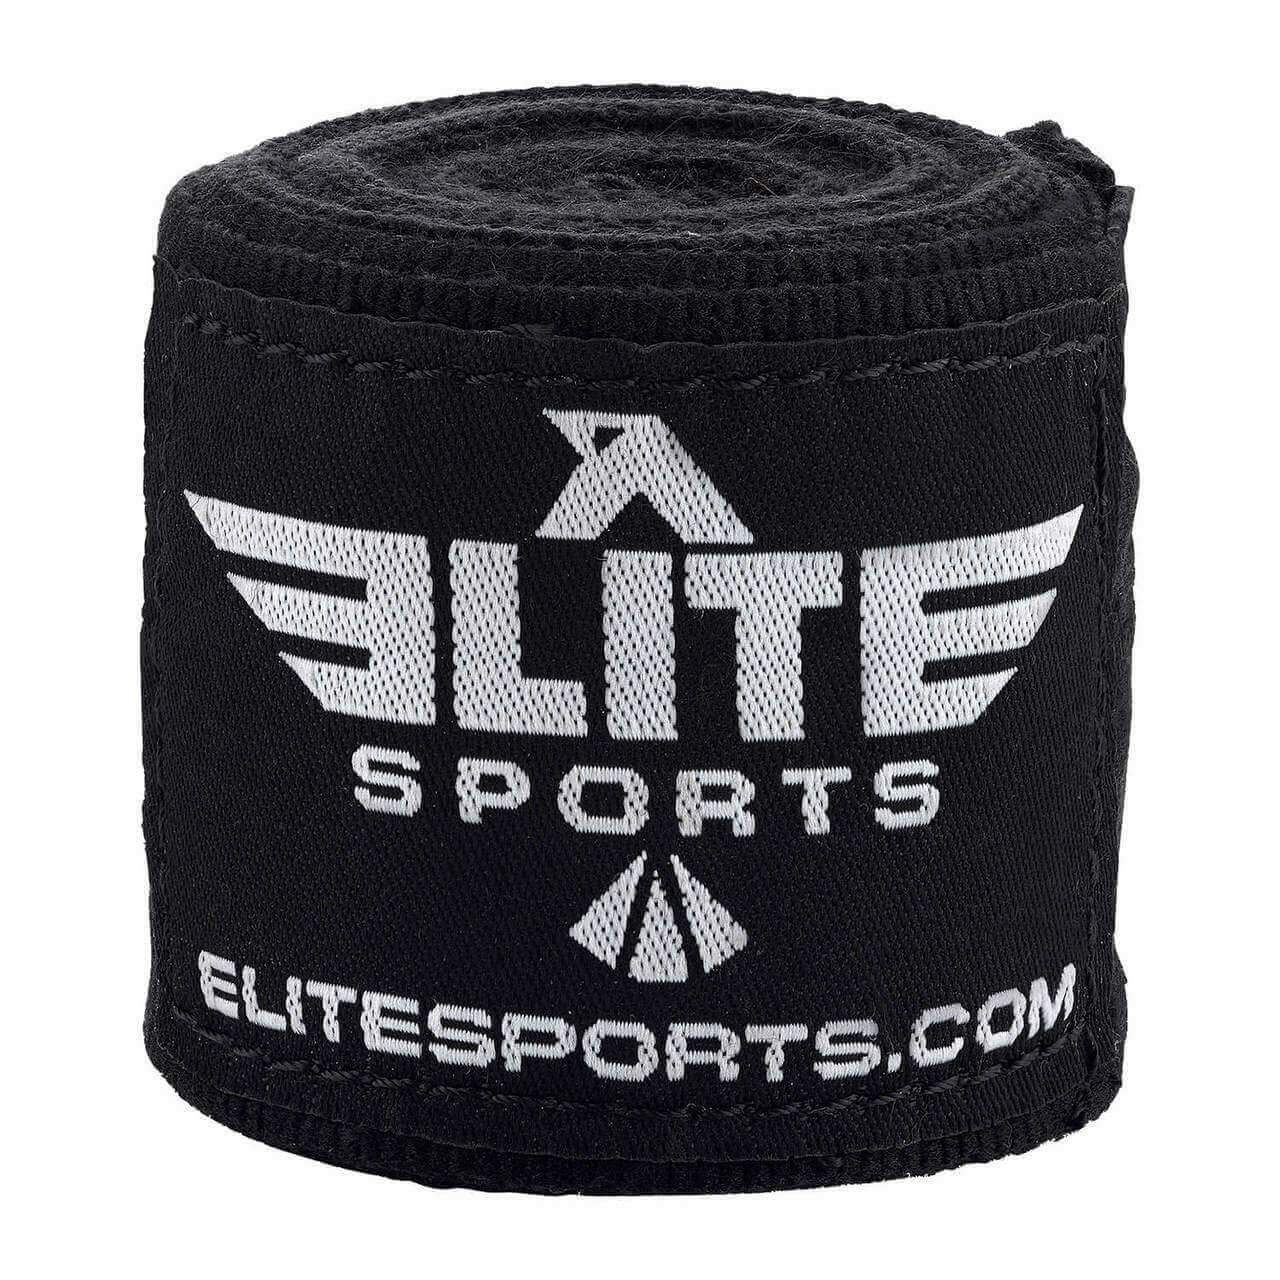 Elite Sports Black Boxing Hand Wraps